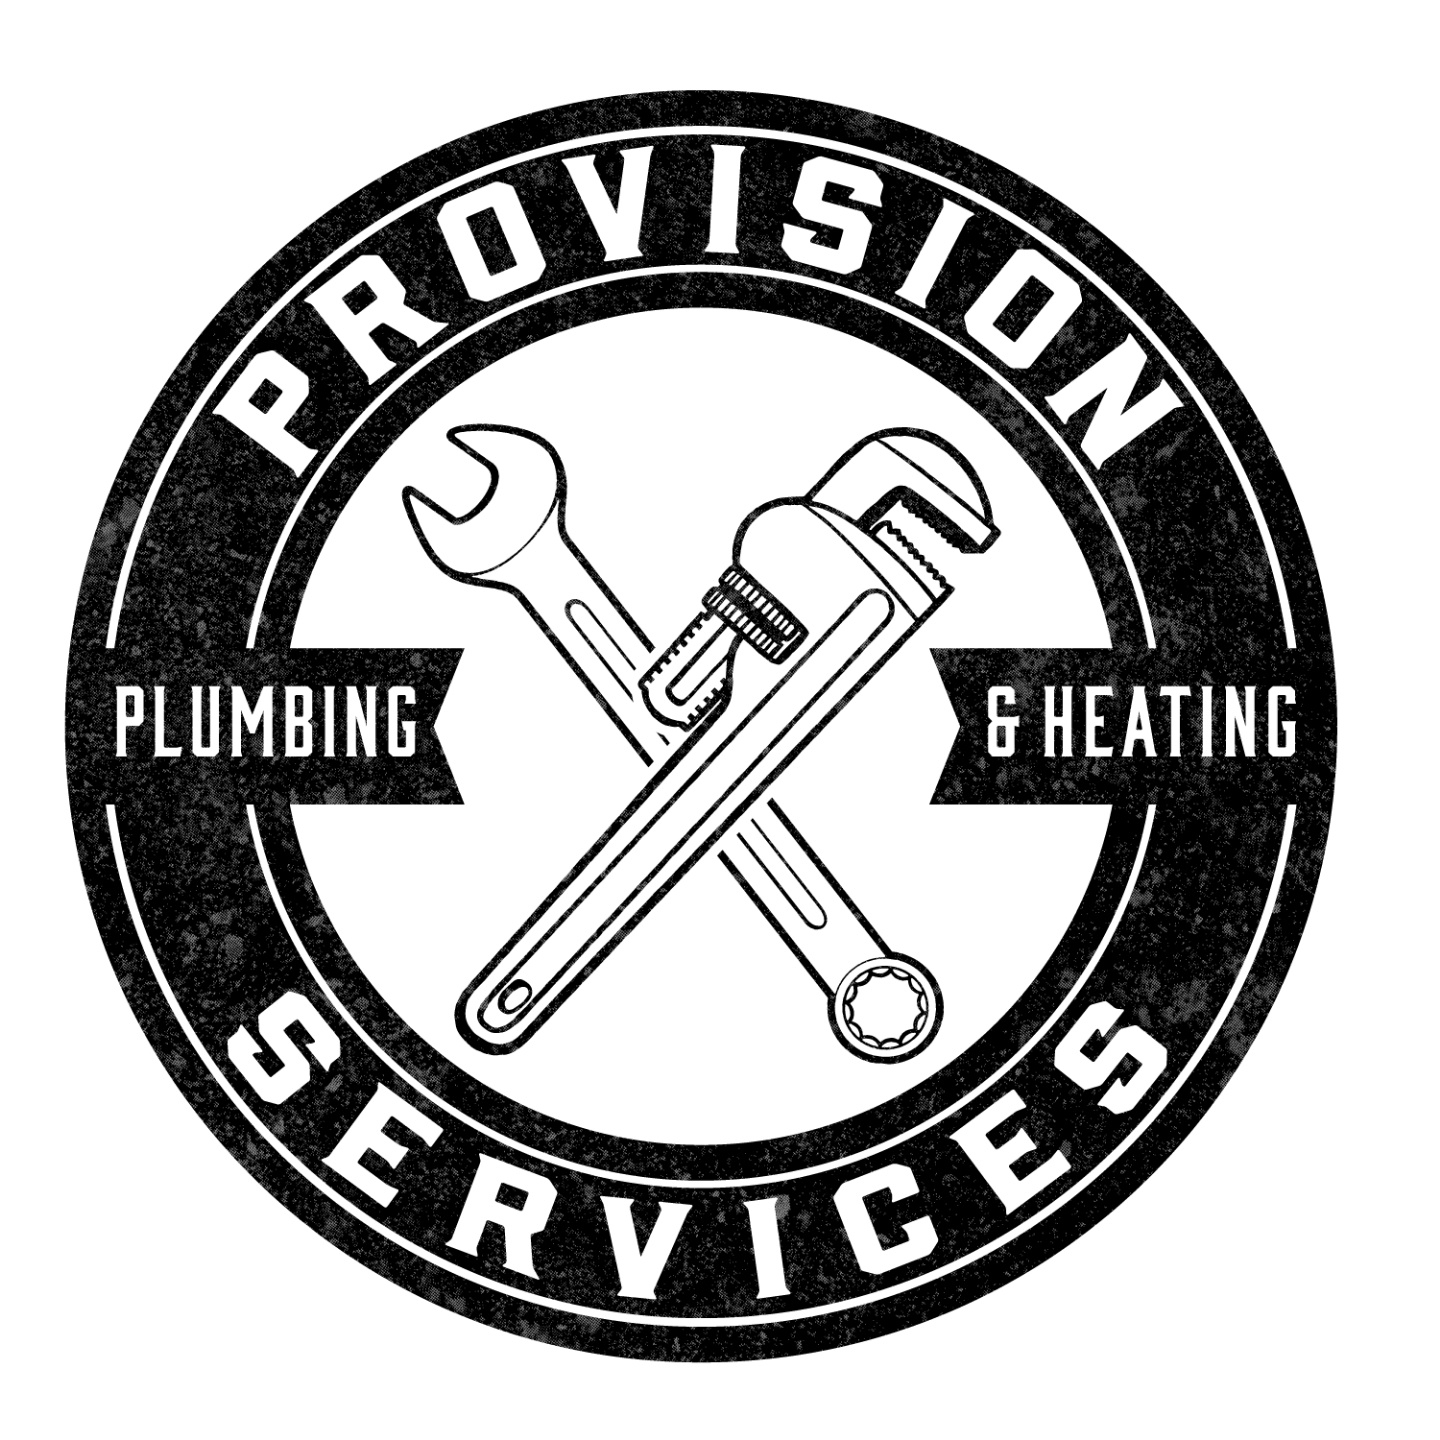 Provision plumbing and heating services